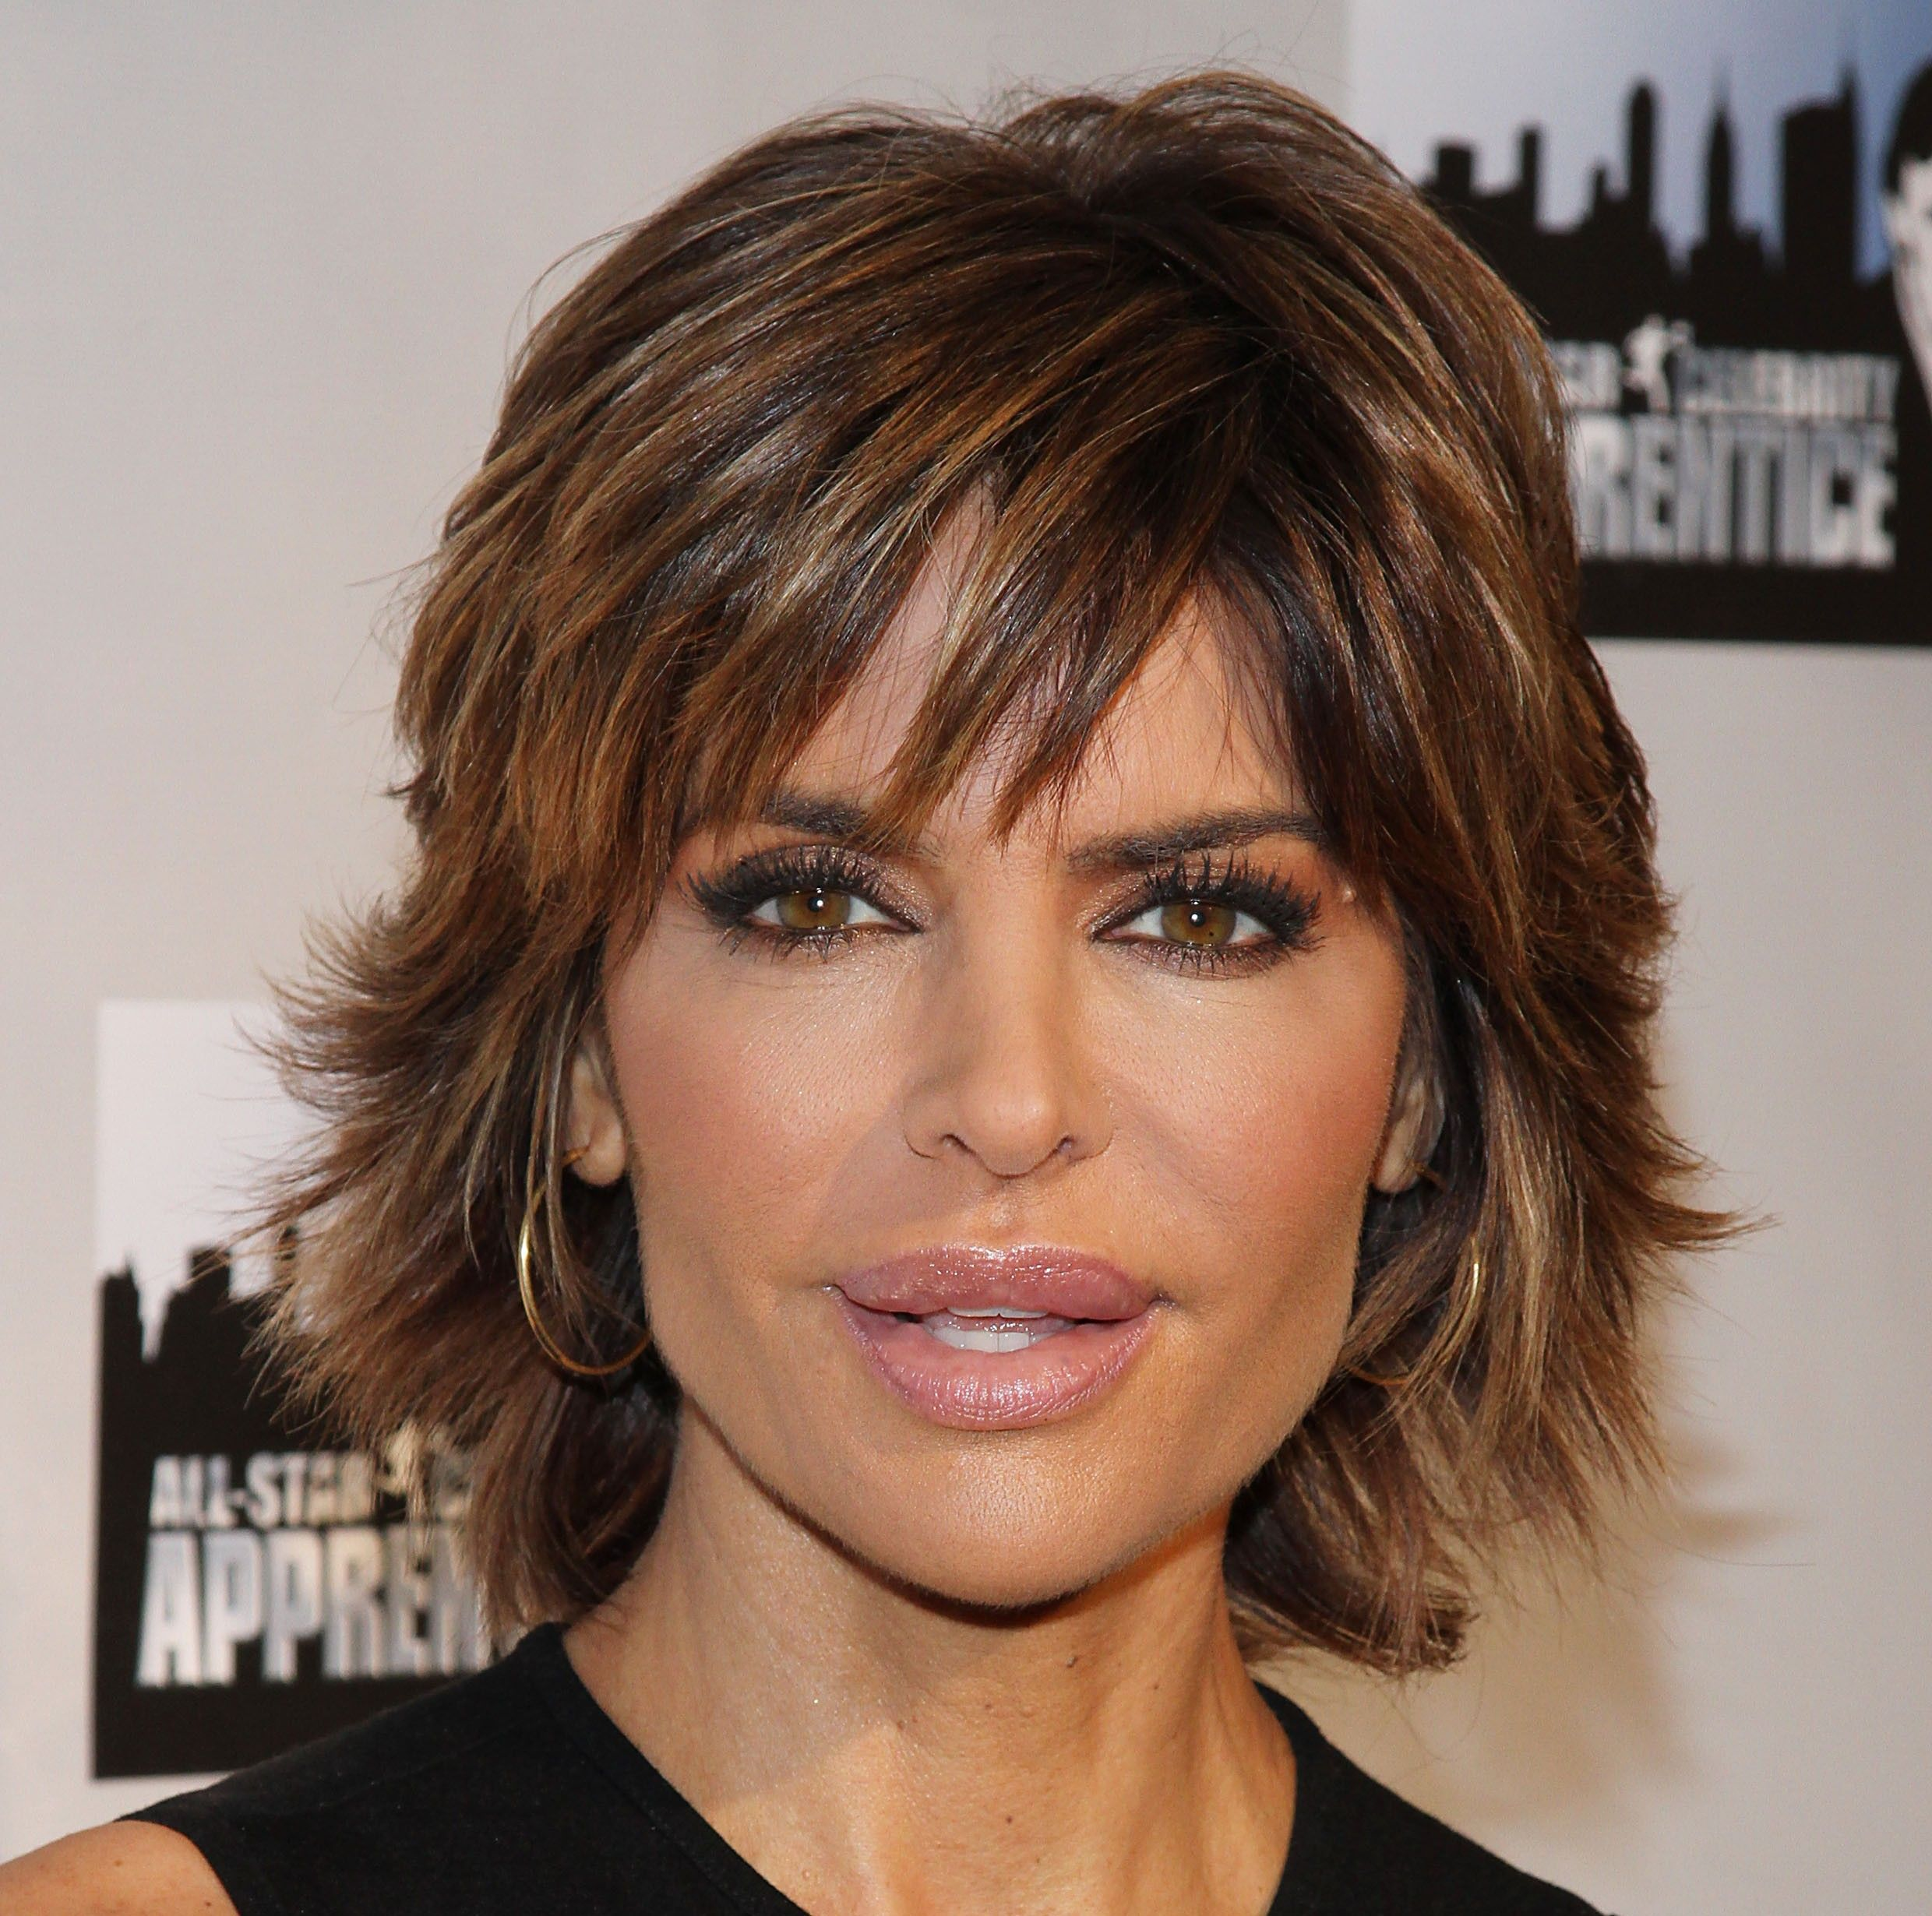 The Short Shag Haircut Is One Of The Best Hairstyles For